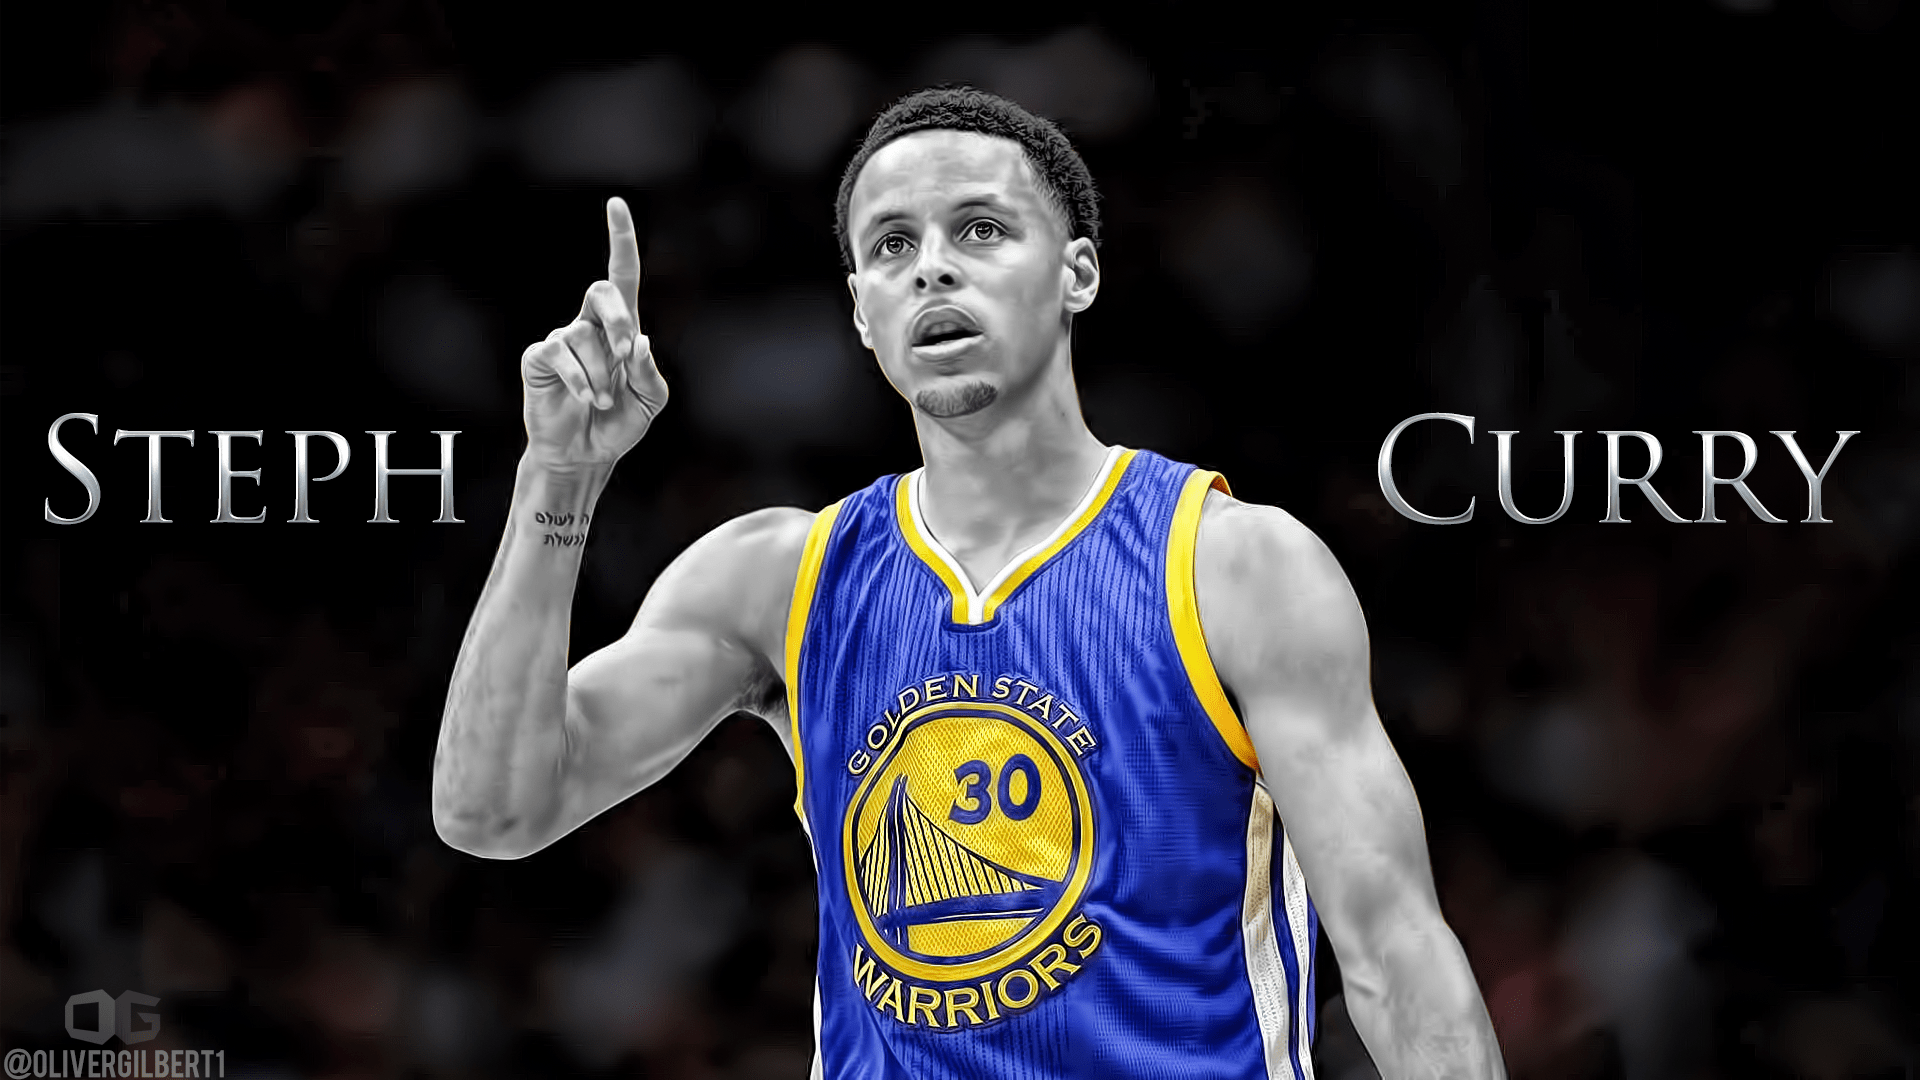 Stephen Curry Full hd wallpapers